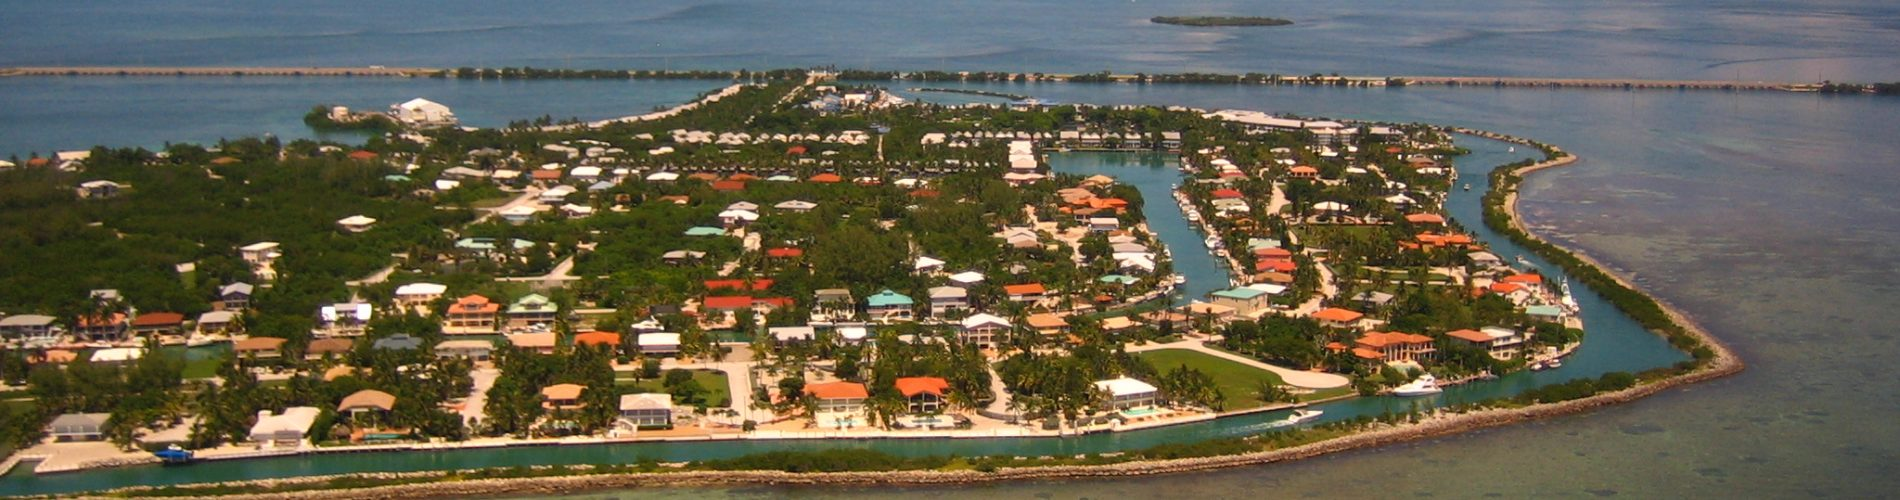 Charter Air Flights offers service to Naples Marco Island Isles of Capri Southwest Florida